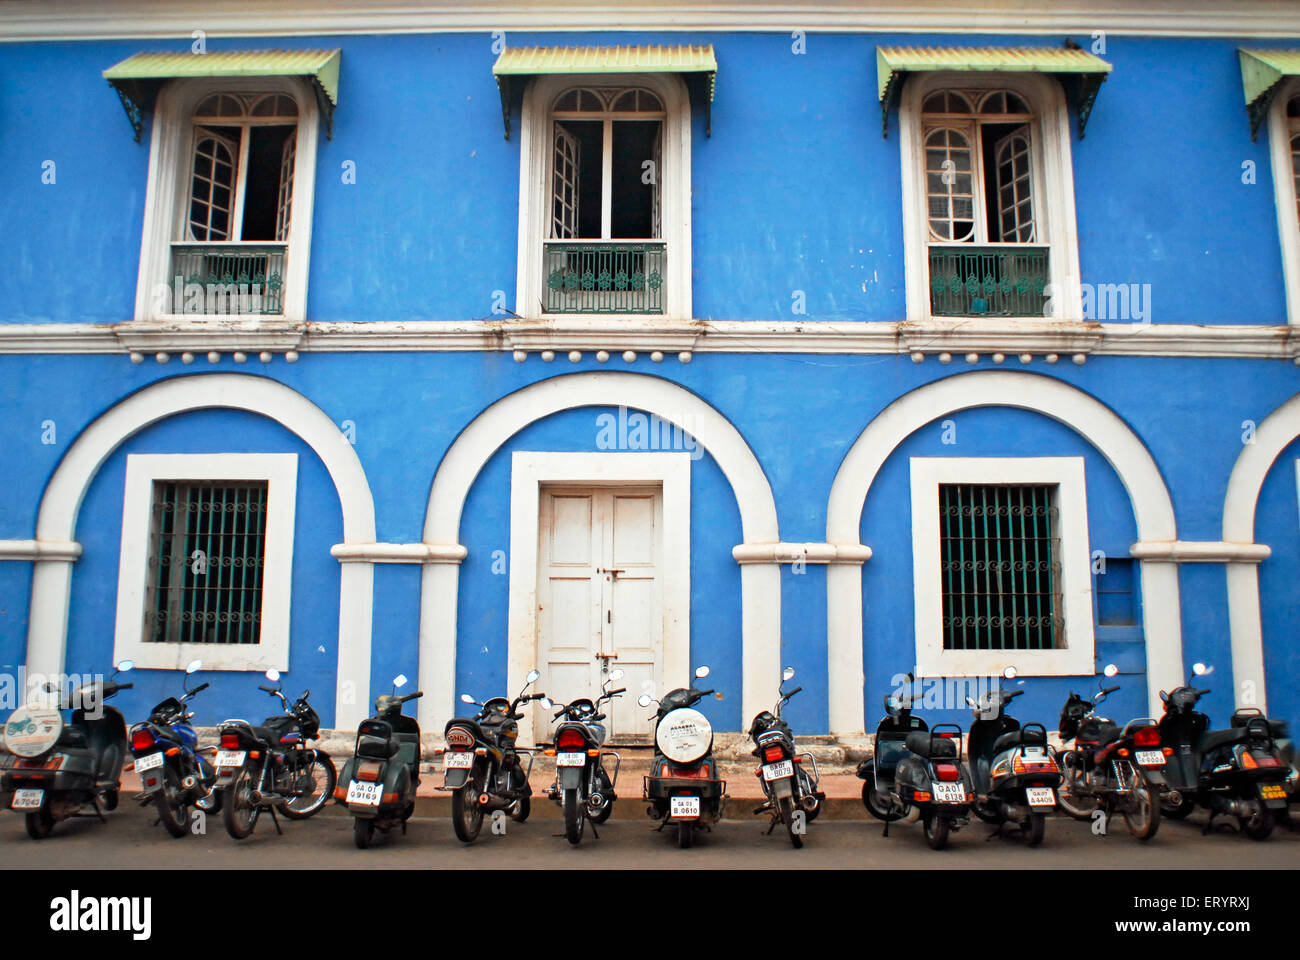 Panjim Or Panaji Stock Photos Images Alamy Full Bike Pato Fx 4 Vehicles Parked In Front Of Old Colonial Building Goa India 6